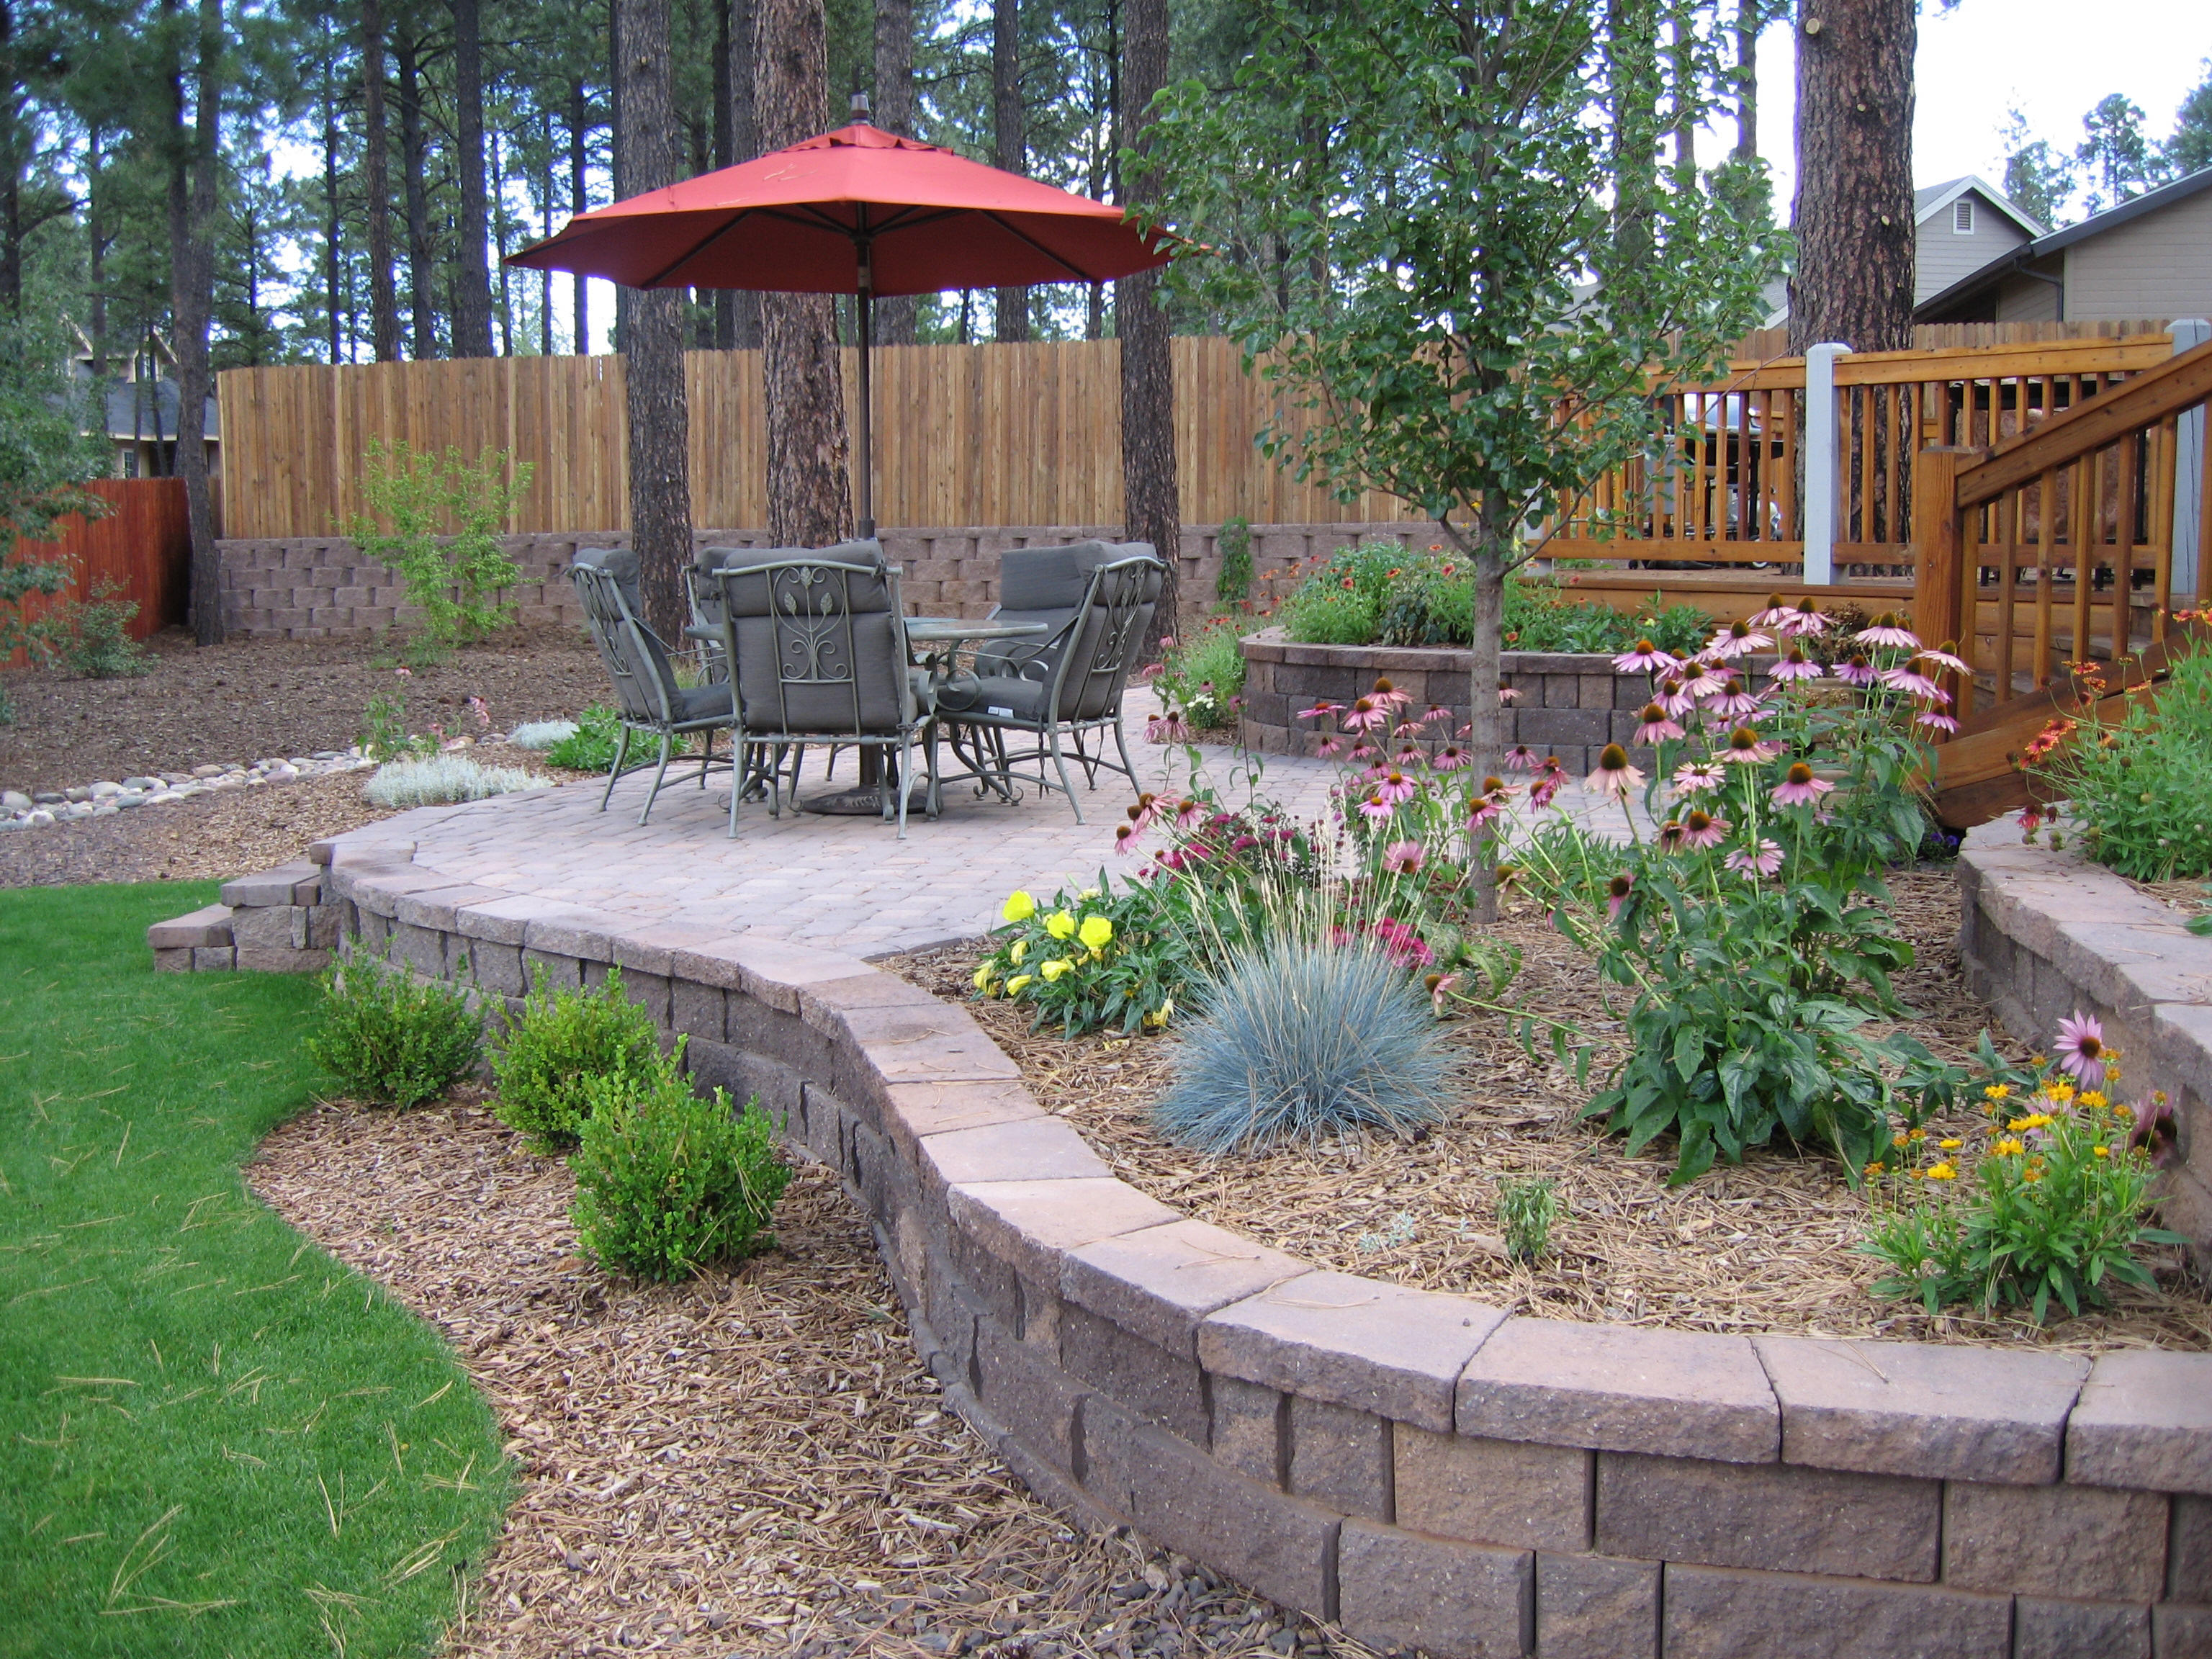 Easy landscaping ideas for beginners and not so green Landscape garden design ideas